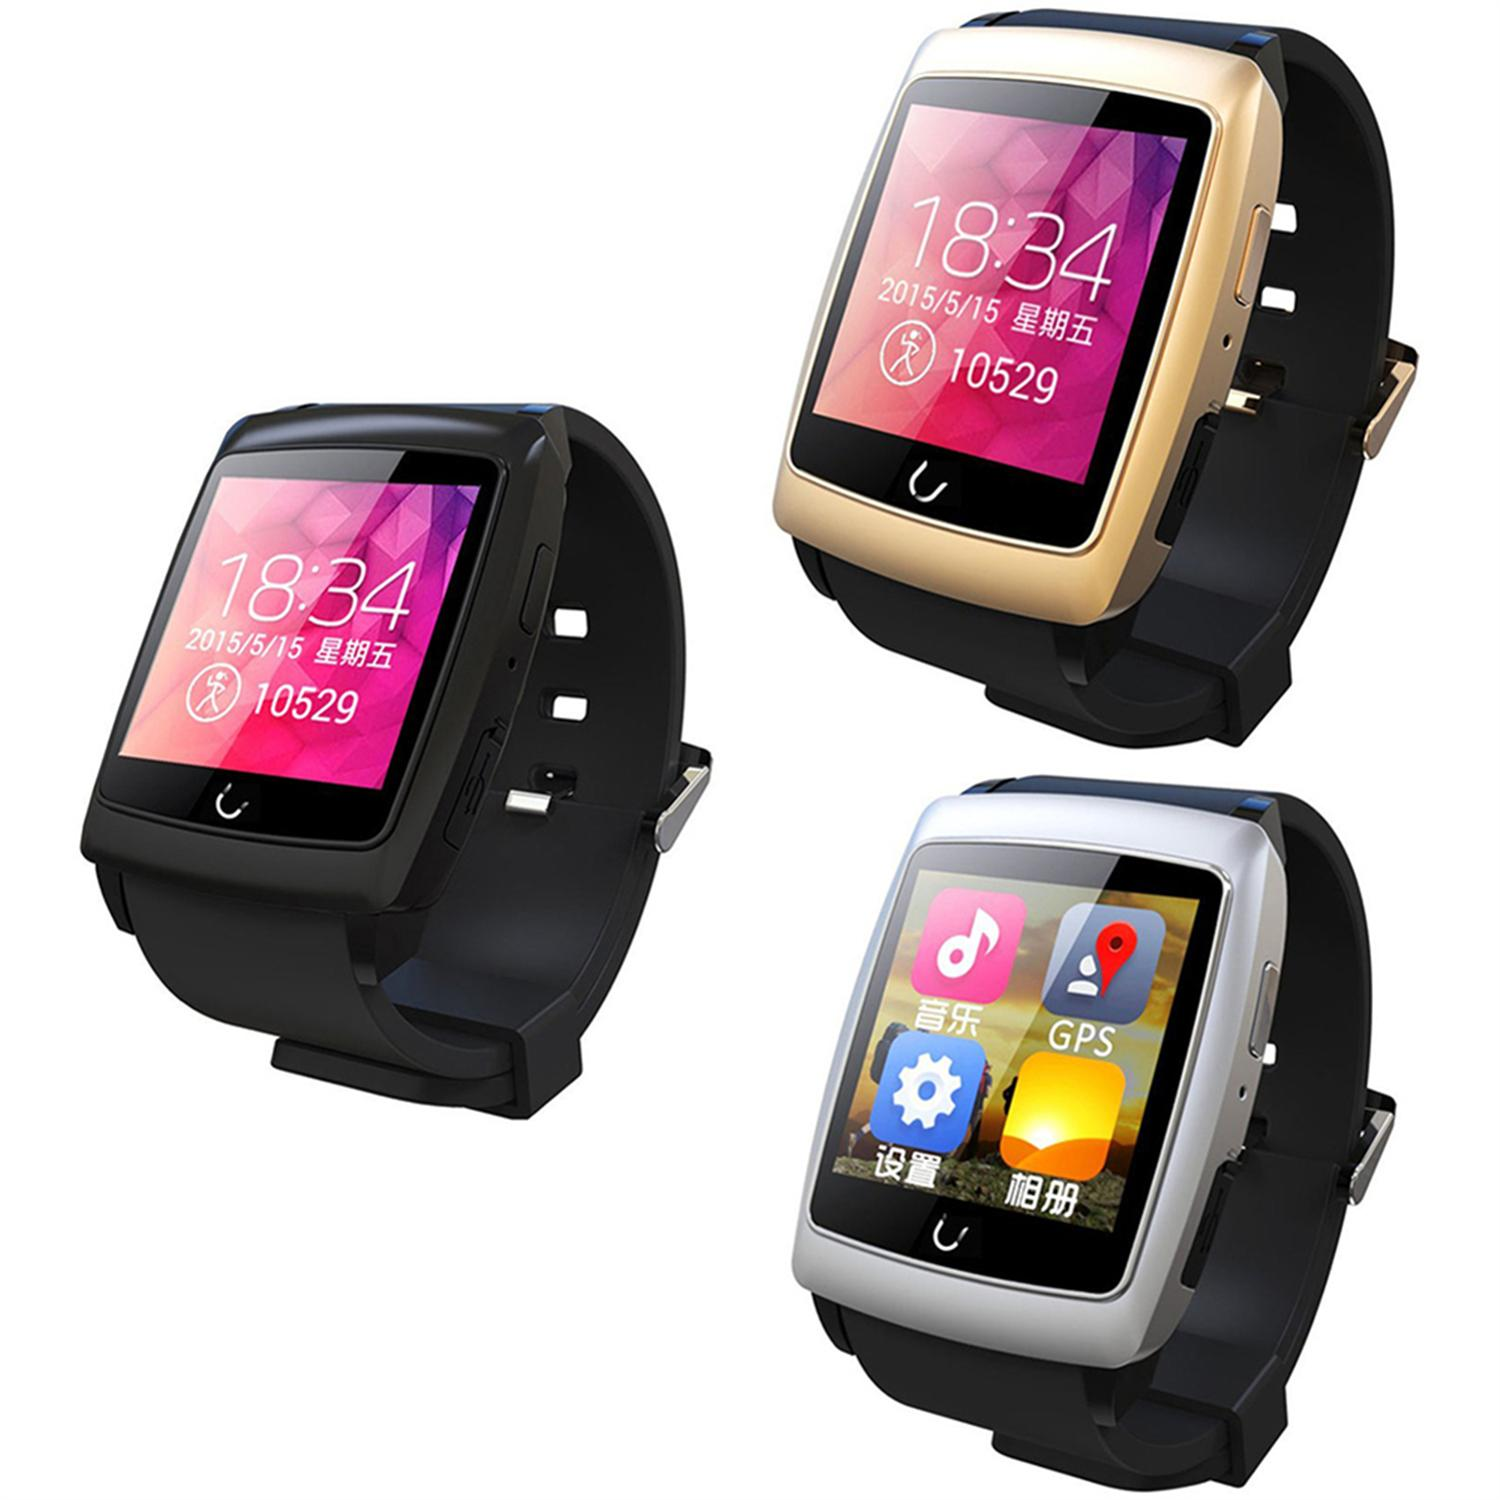 Camera Internet Phone Call Android phone call internet promotion shop for promotional u watch u18 1 54 waterproof bluetooth smart watches with gps wifi function android system ios phone